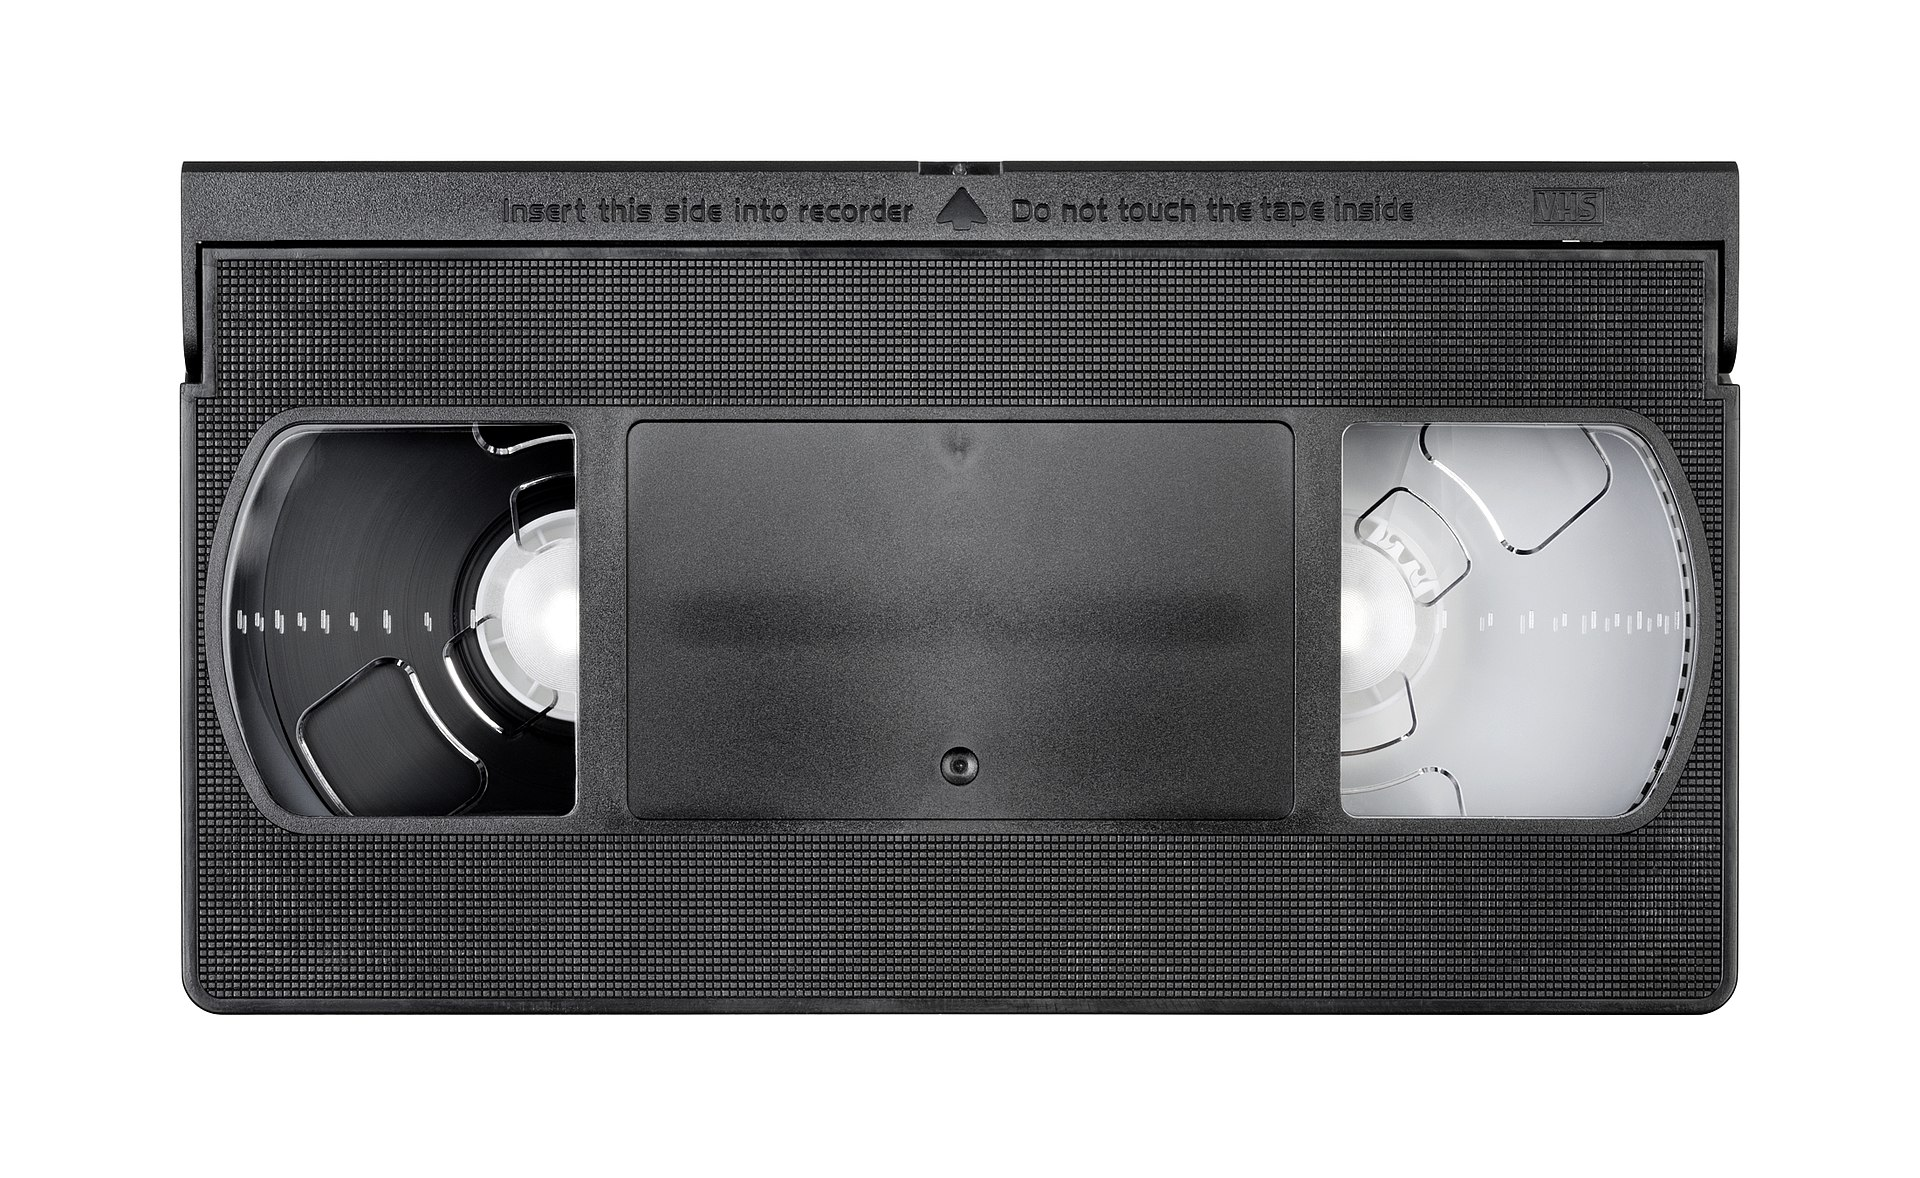 audio format wars In the 1970s, betamax and vhs entered a format war to determine the  beta  had better resolution, less video noise, better sound quality, and.